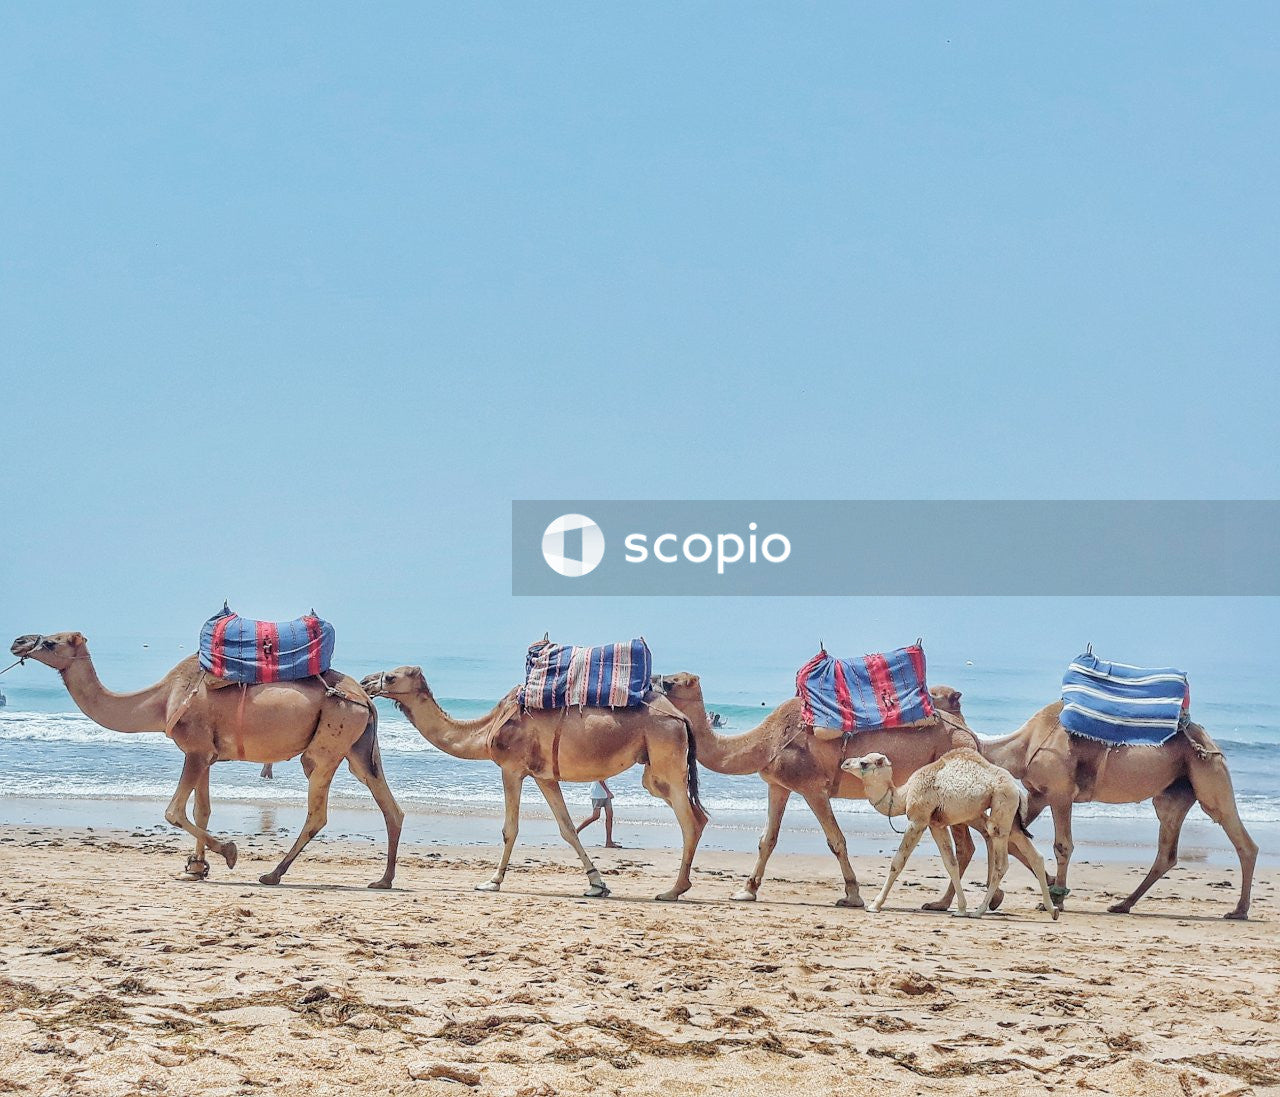 Five brown camels near seashore